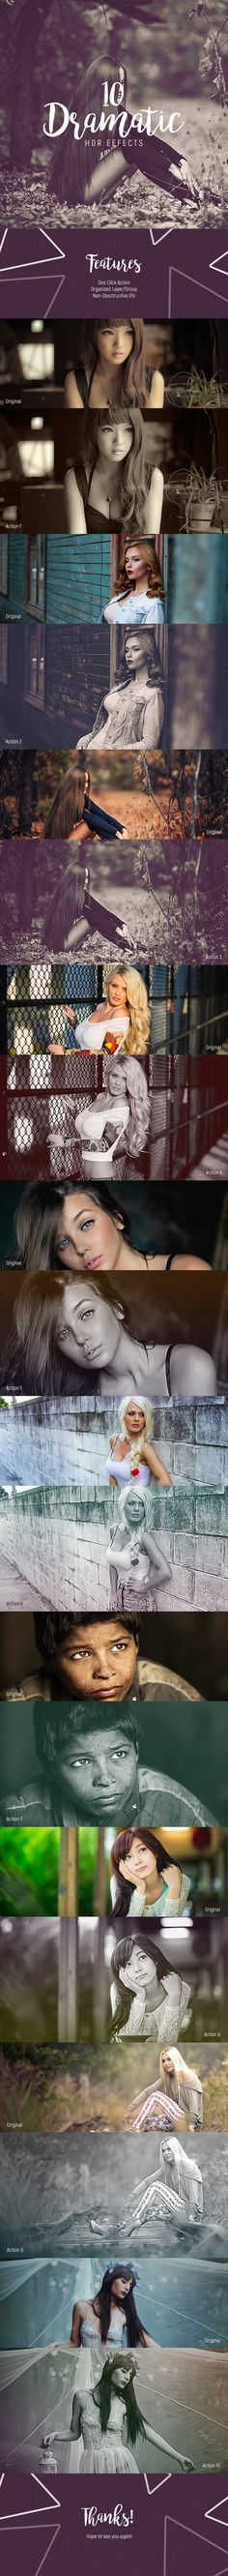 10 #Dramatic #HDR - Action - Photo Effects #Actions #PSAction #Photoshop #PS #Graphicriver #PhotoEffects